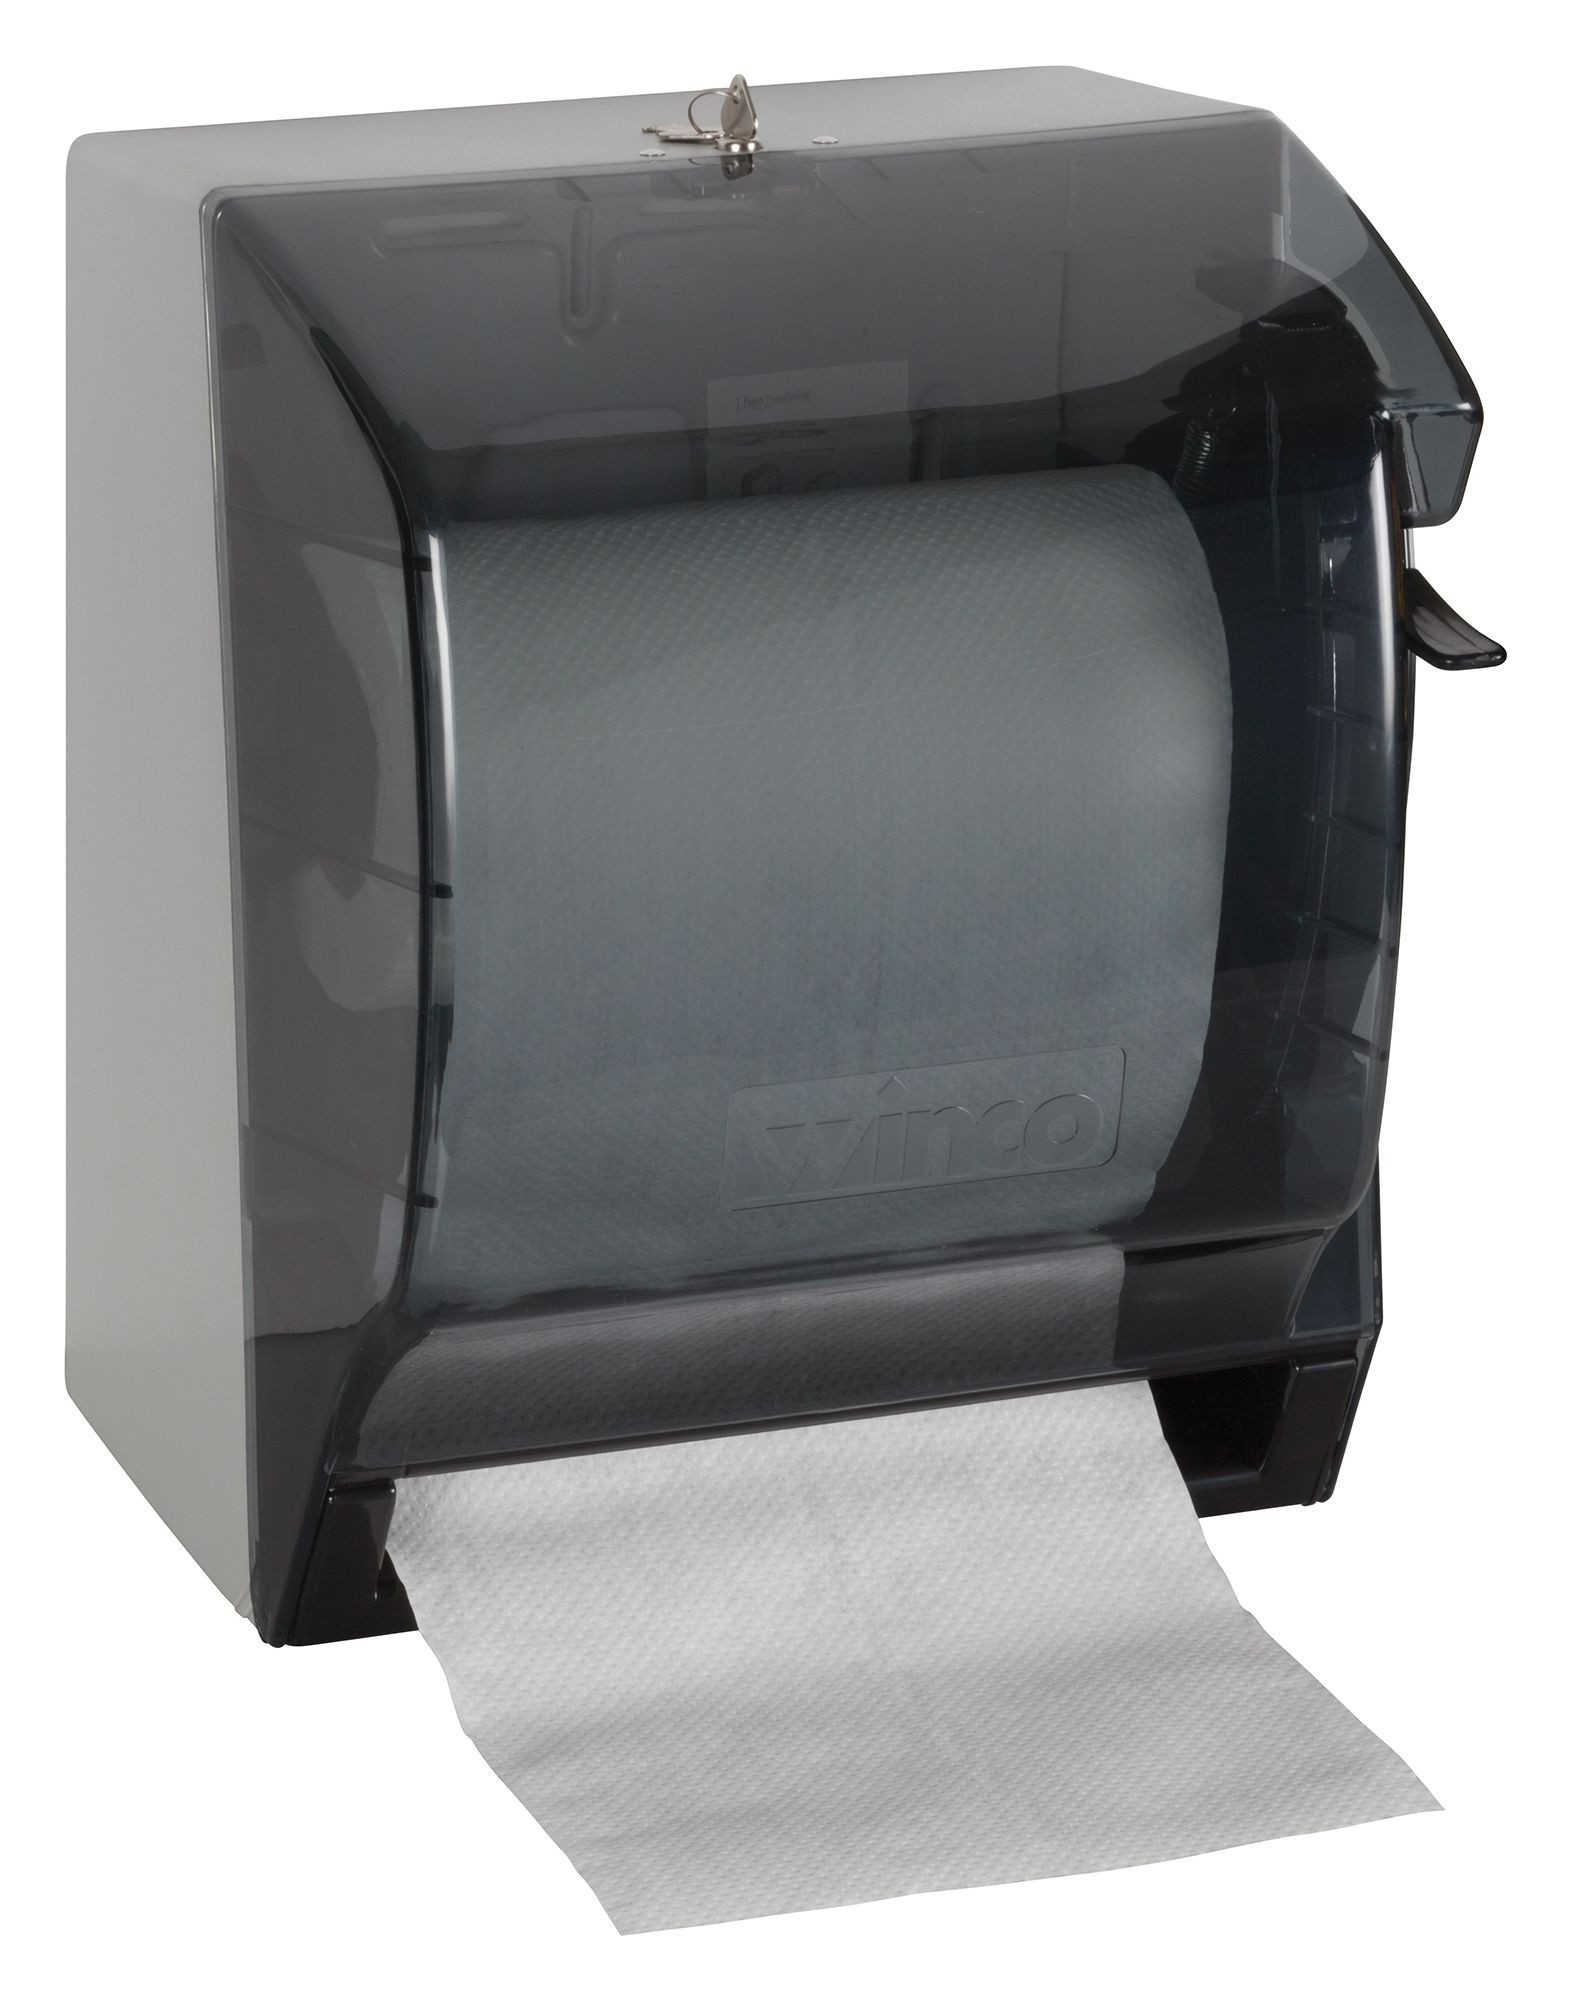 Winco TD-500 Roll Paper Towel Dispenser with Lever-Action